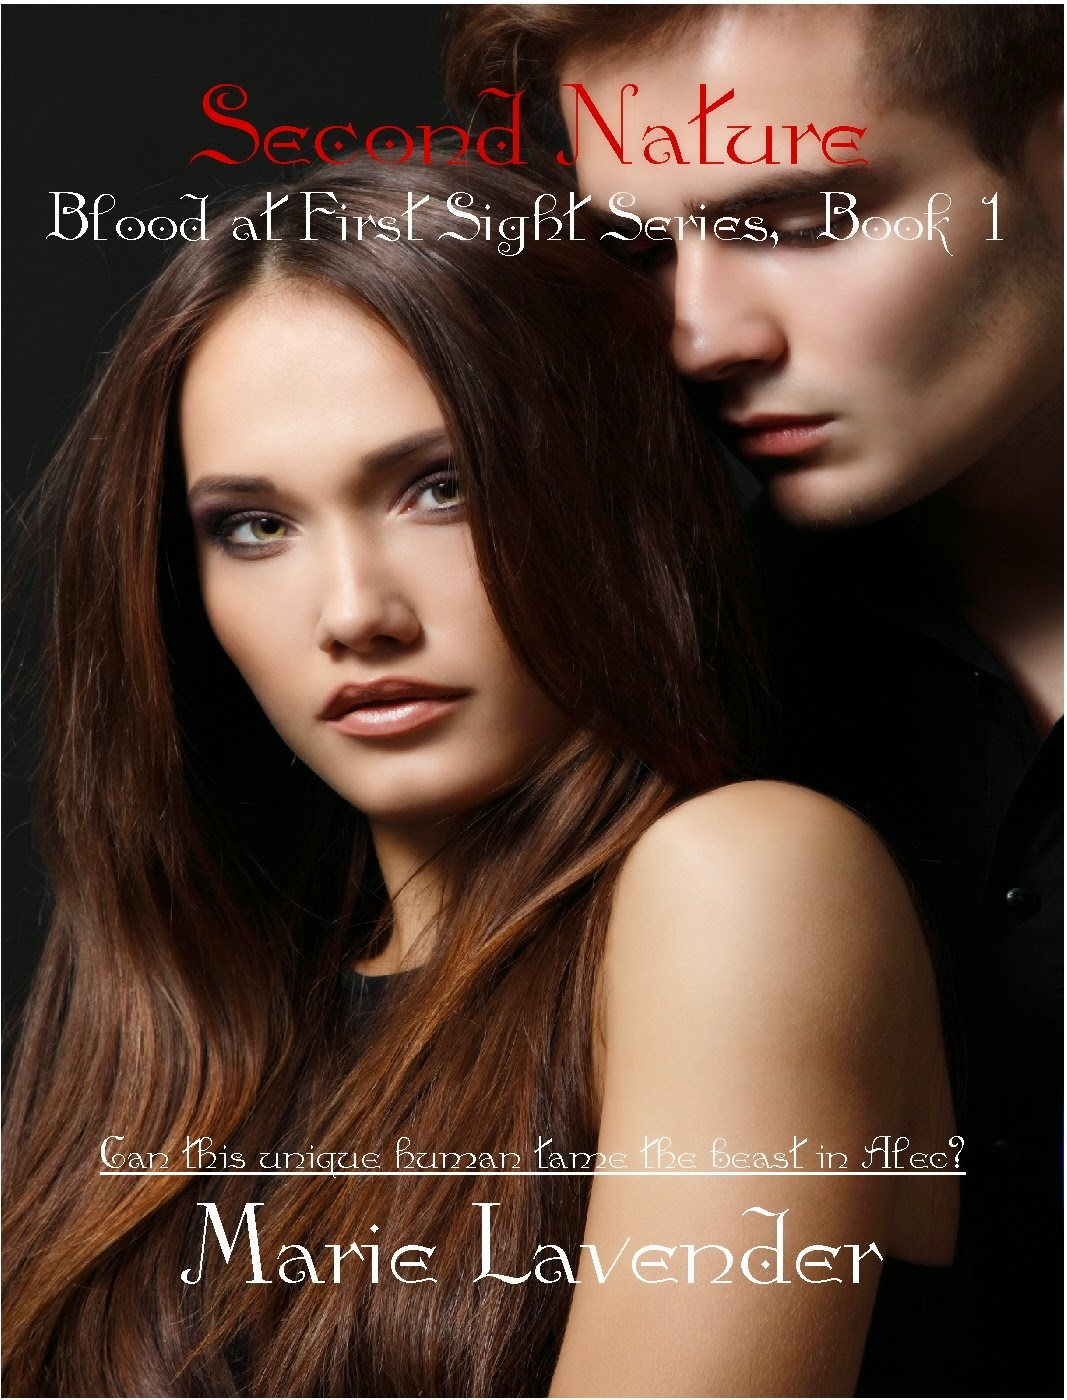 http://www.amazon.com/Second-Nature-Blood-First-Sight-ebook/dp/B00Q7FWIWA/ref=pd_sim_sbs_kstore_3?ie=UTF8&refRID=1V0CDDGQ3Z7JCFDGAB3Y